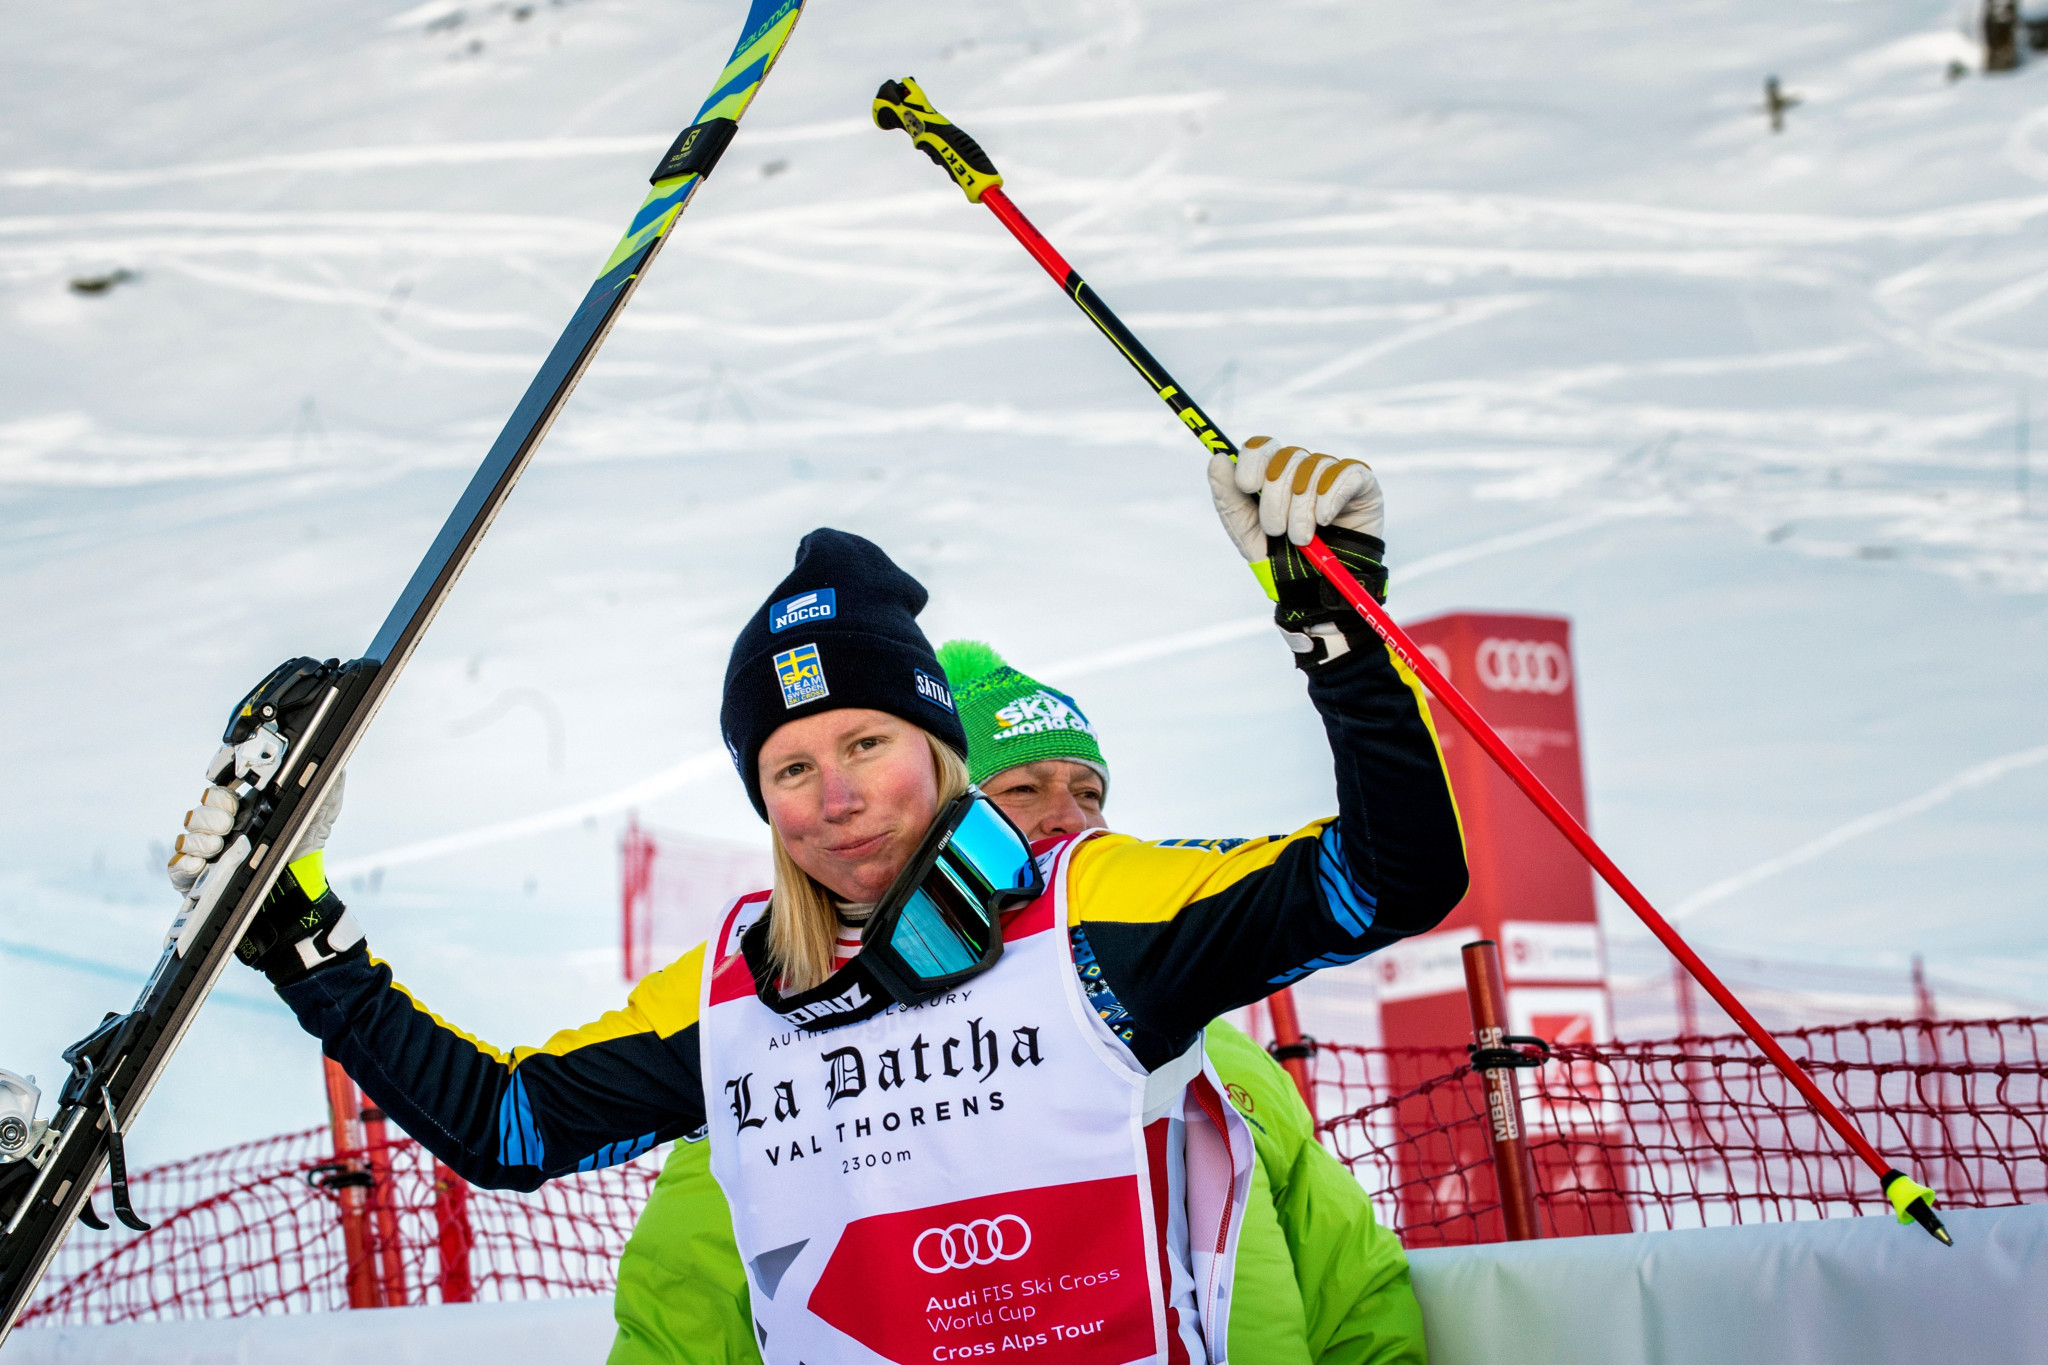 Competition favourite Näslund claims ski cross gold on home snow